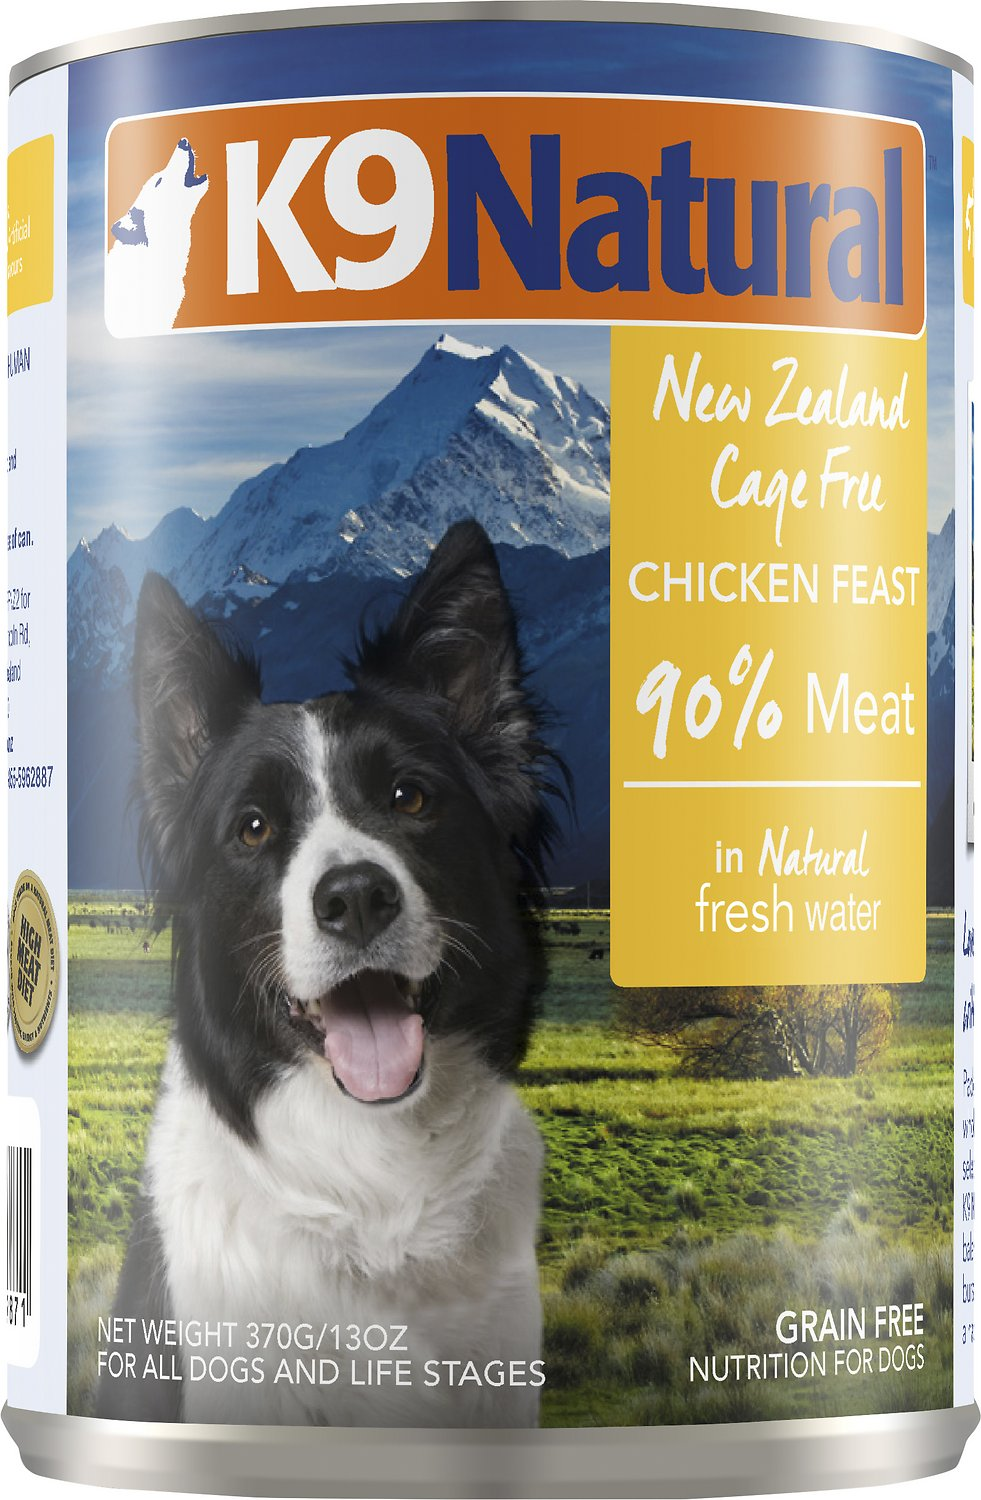 K9 Natural Chicken Feast Grain-Free Wet Dog Food, 13-oz can